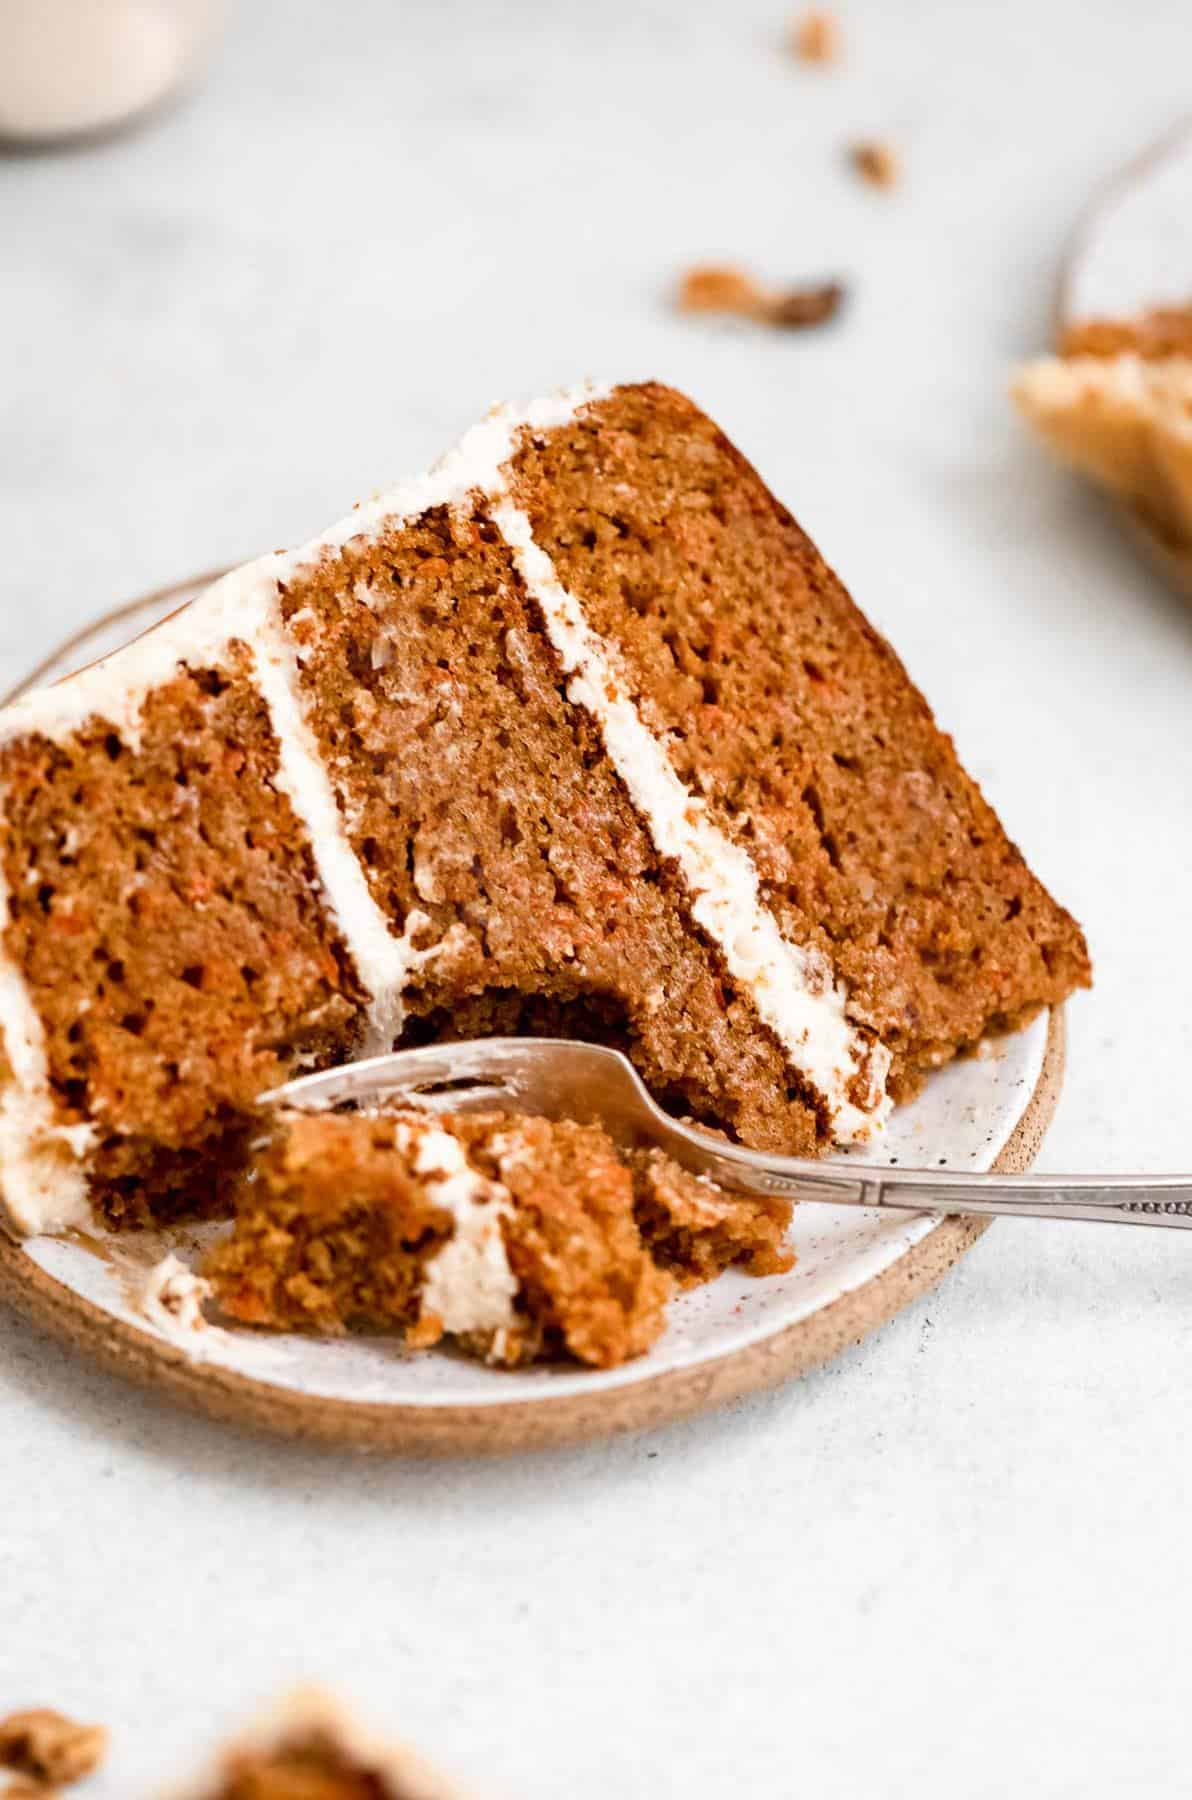 slice of gluten free carrot cake with a fork taking a bite